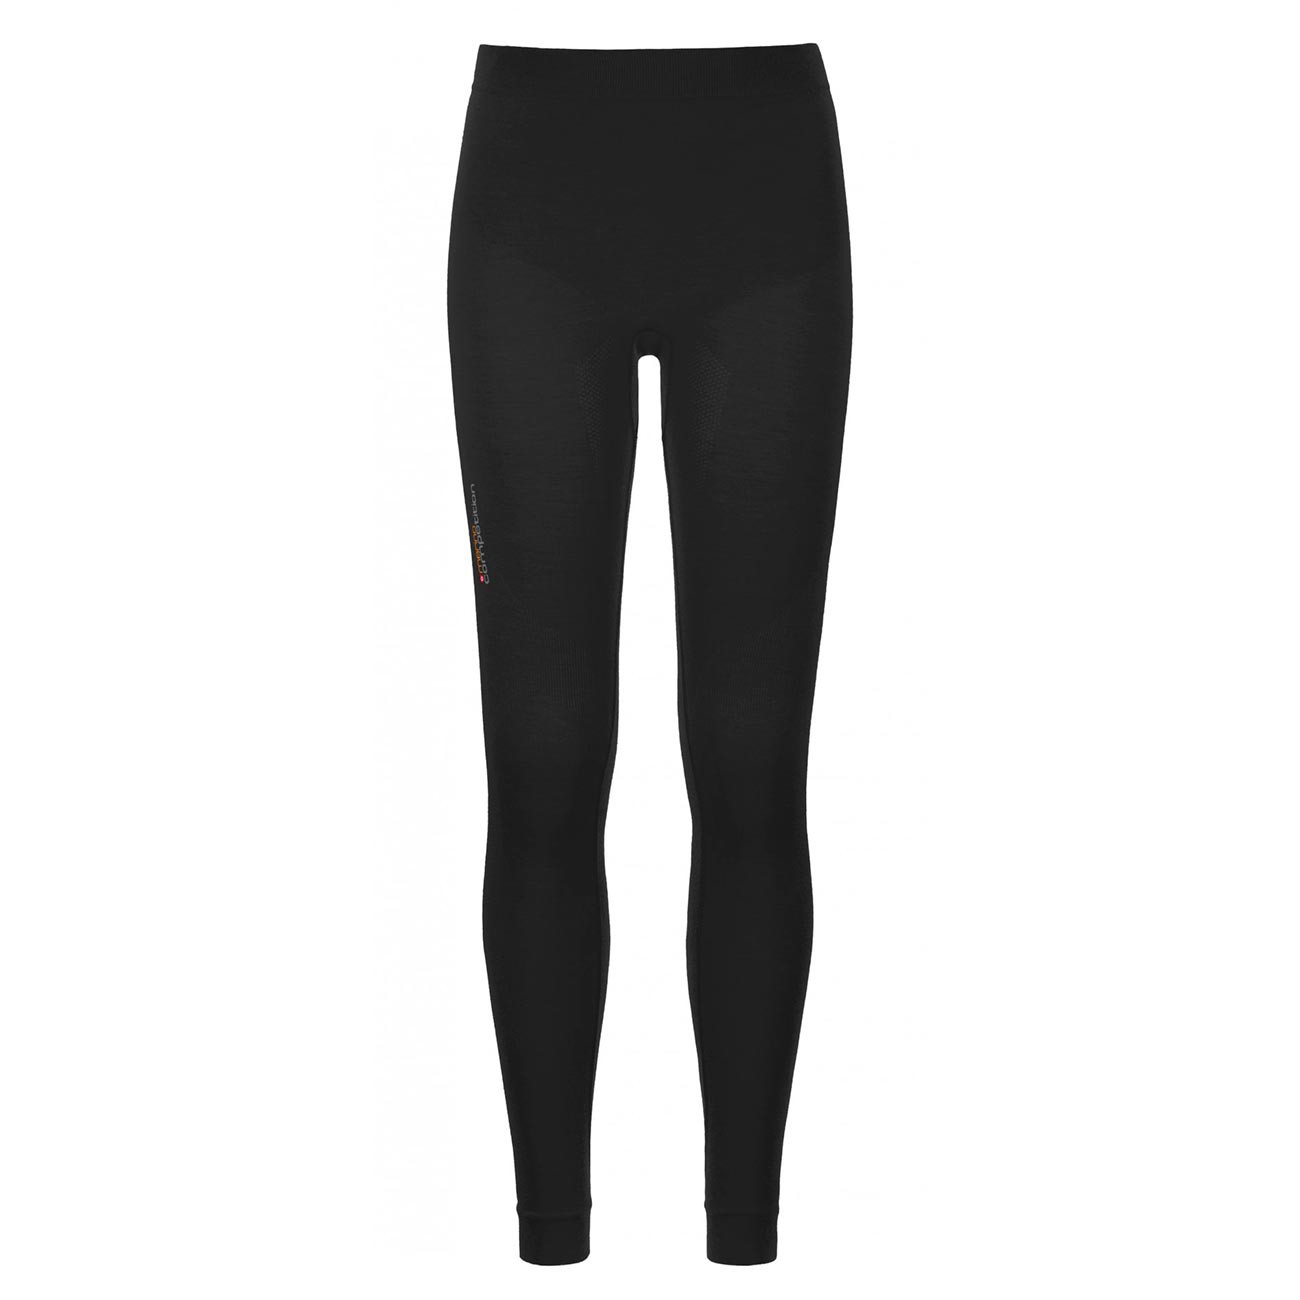 Spodky Ortovox Competition Long Pants Wms black raven